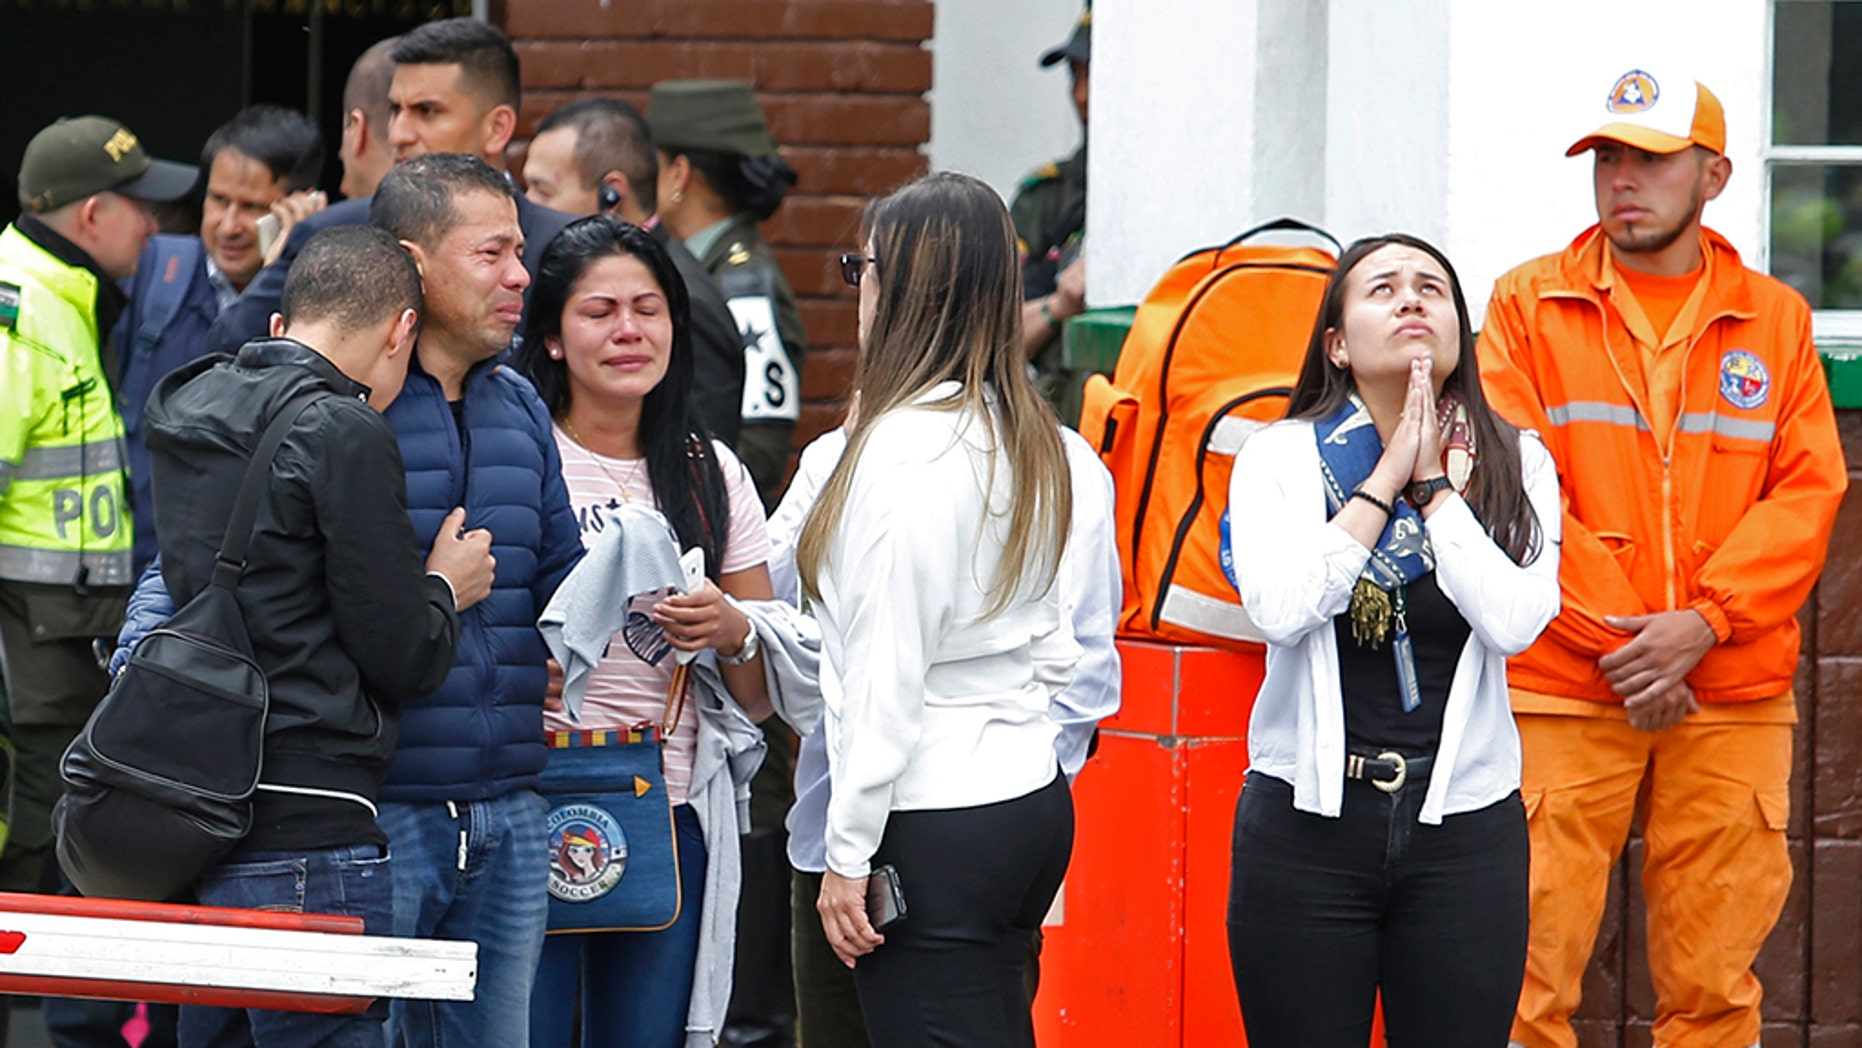 Family members of victims of a bombing gather outside the entrance to the General Santander police academy where the bombing took place in Bogota, Colombia, Thursday.